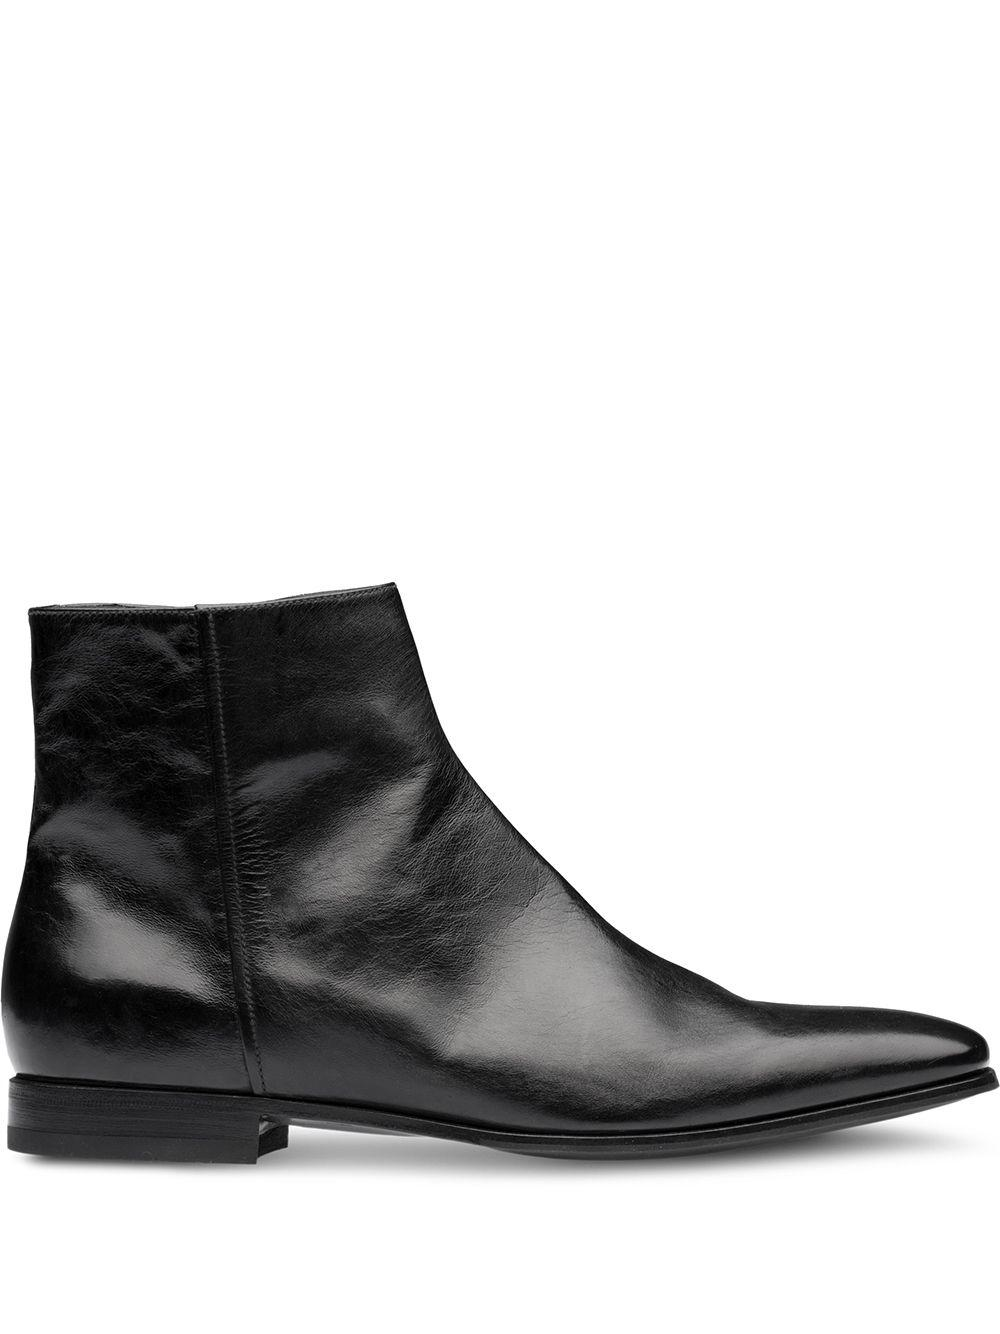 Prada Leather Zipped Ankle Boots in